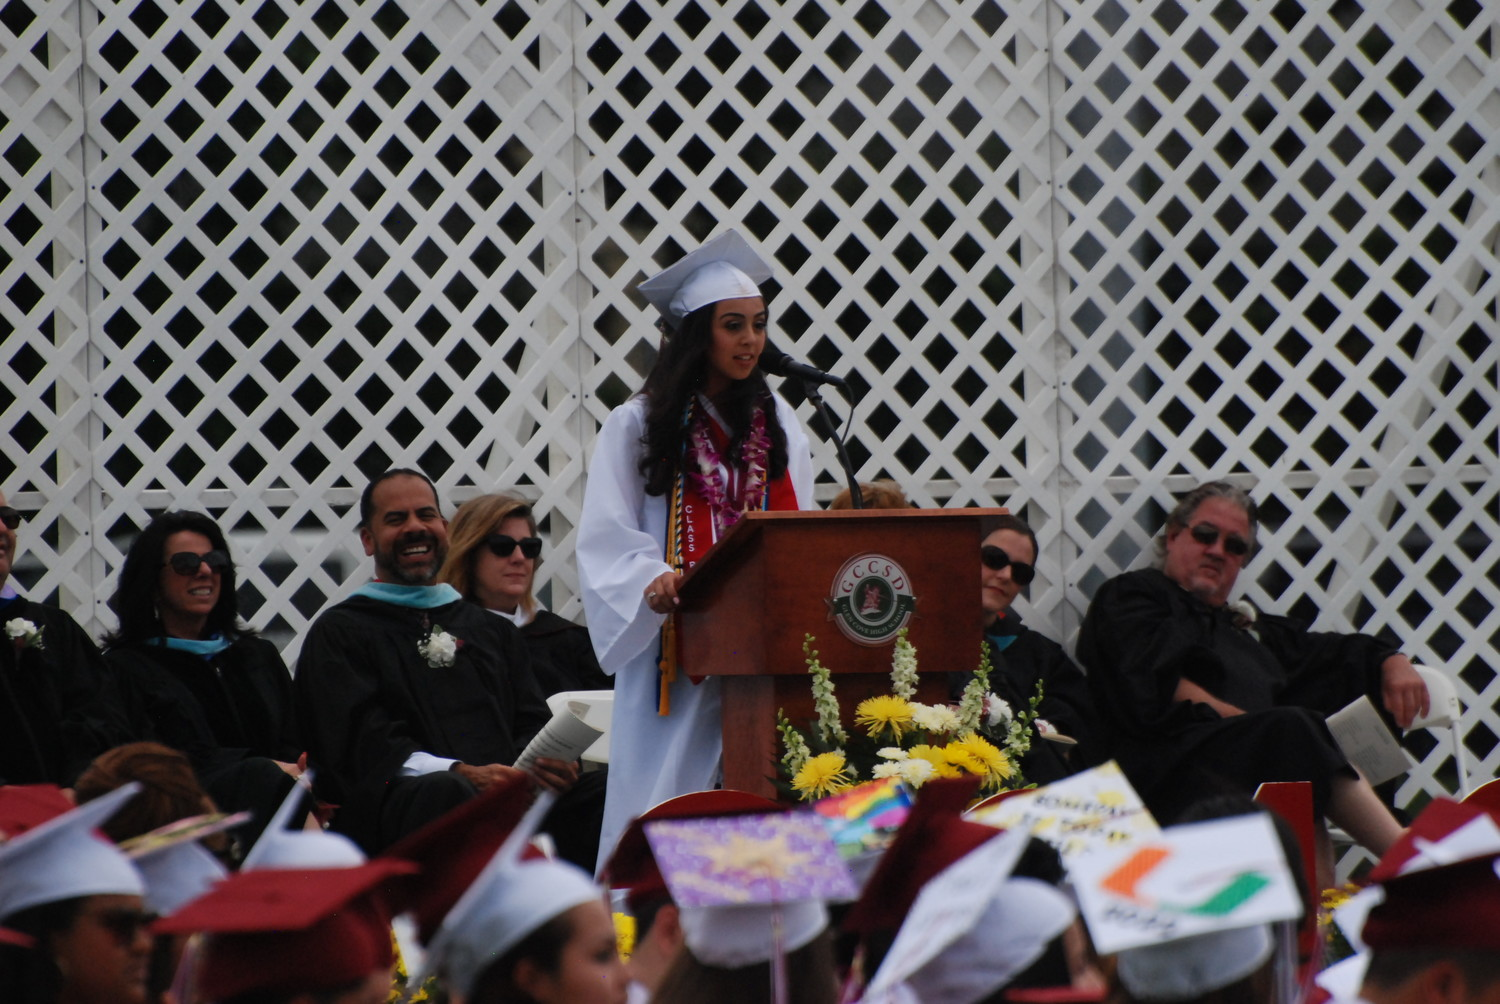 Senior class president Talia Sakhaee reminded her peers how special the four years they spent together had been.